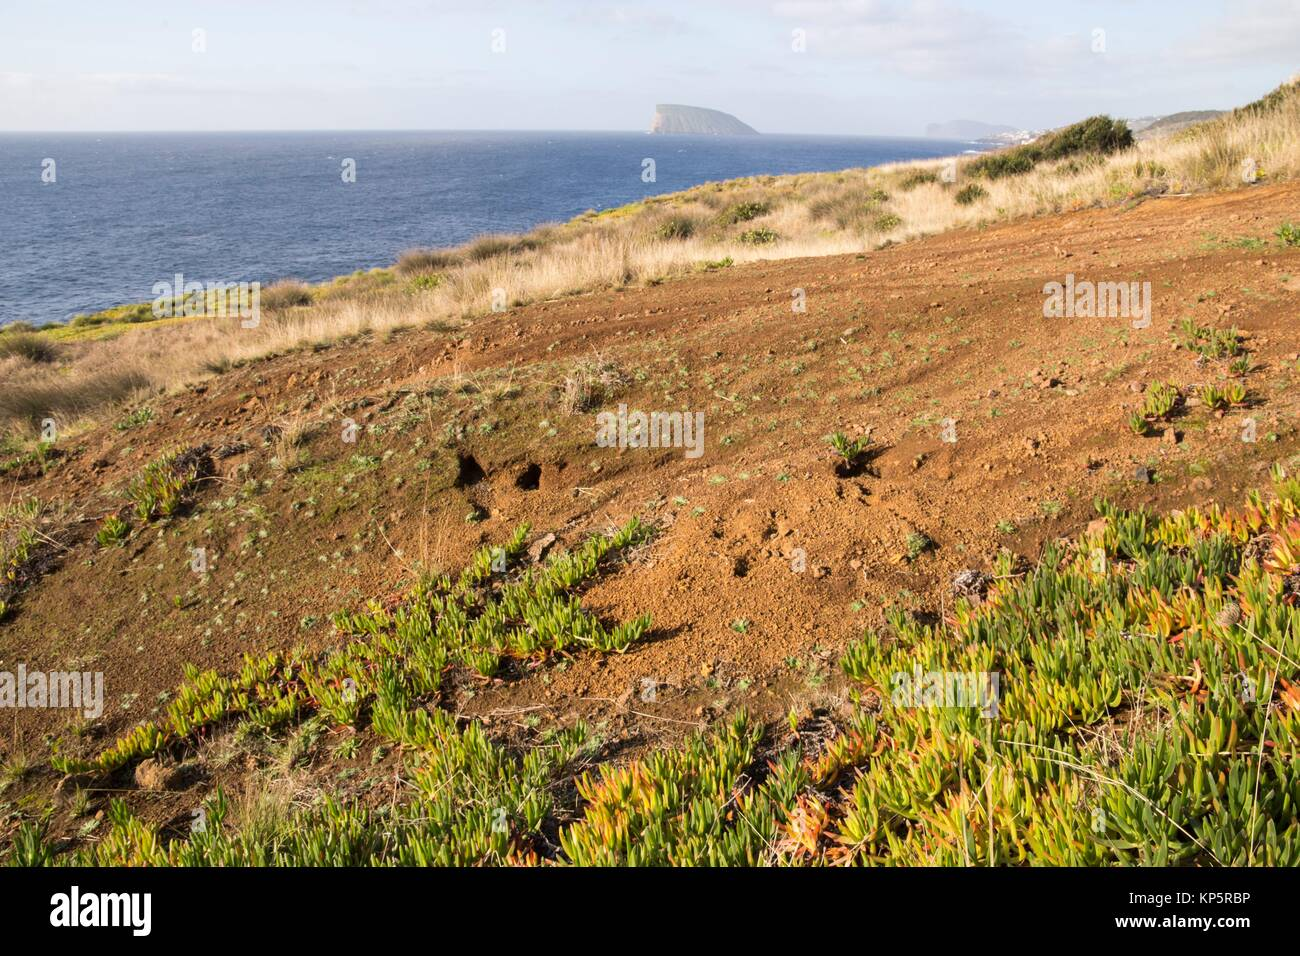 South of Terceira island with goat islands Azores Portugal. Ponta das Contendas outlook. - Stock Image